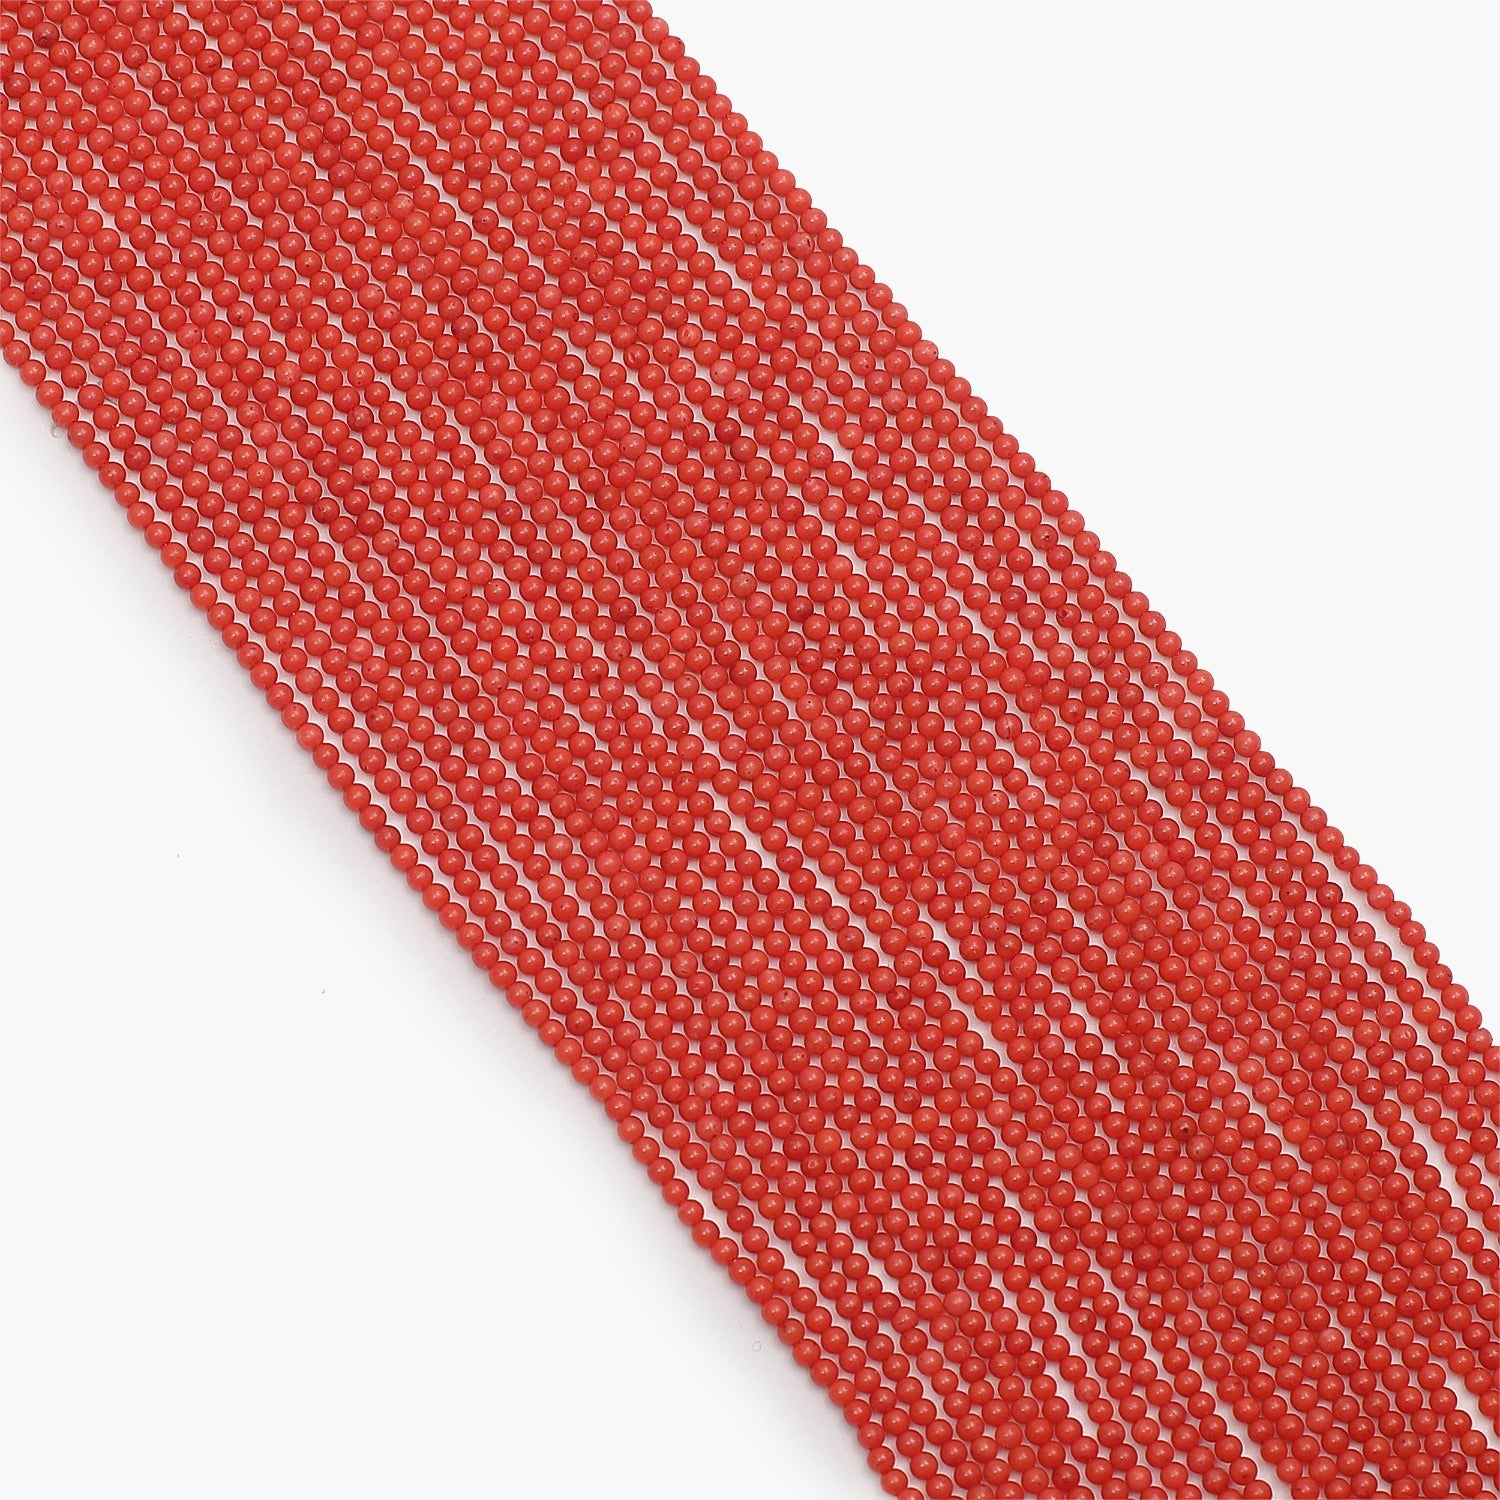 Taiwan Red Coral Semi Precious Gemstone Beads- Sold Per Strand